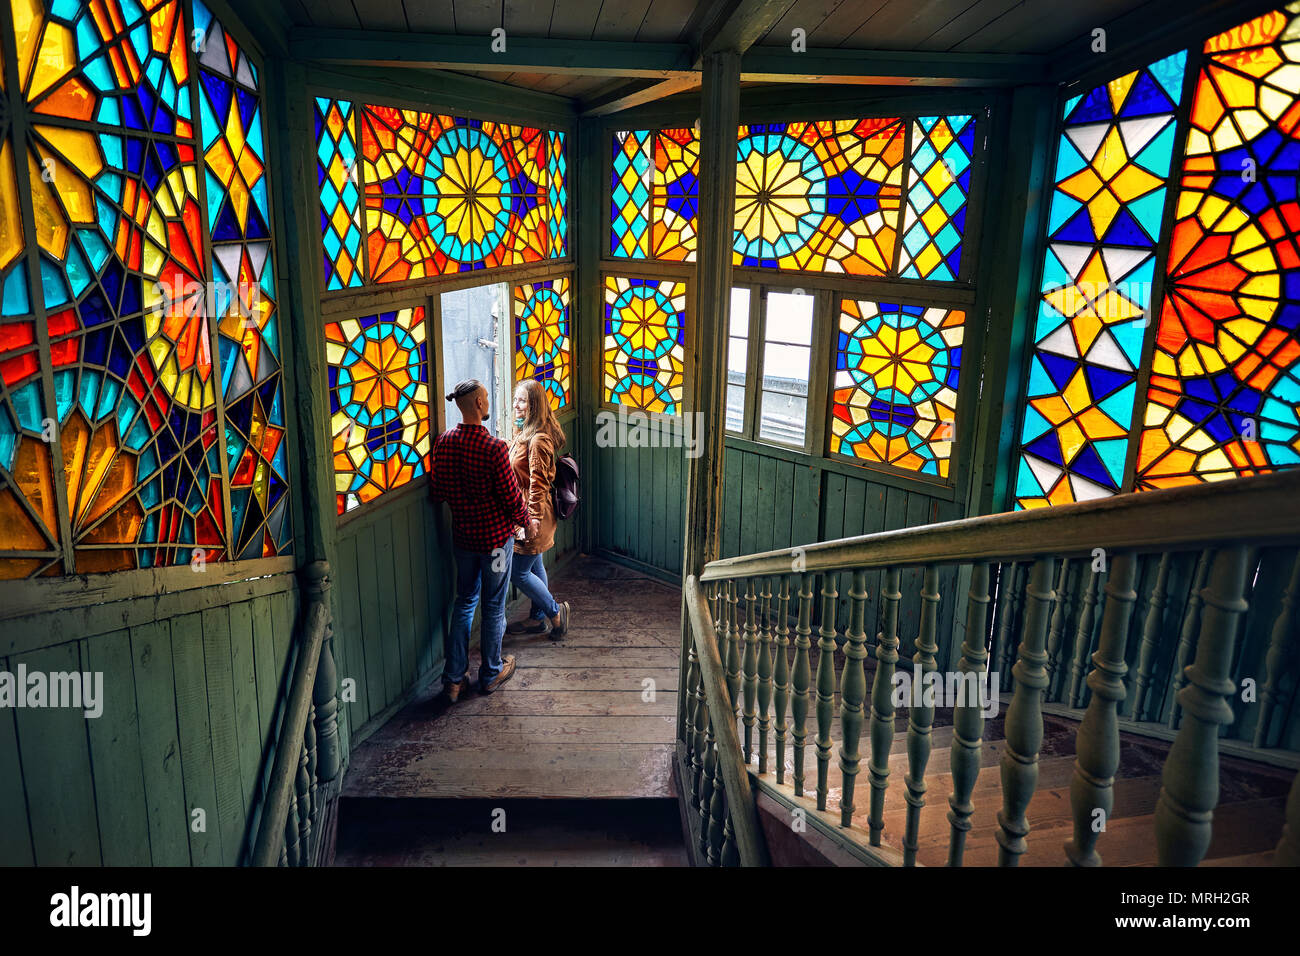 Romantic couple of tourist at balcony with stairs and colorful mosaic glasses in old Tbilisi, Georgia. - Stock Image